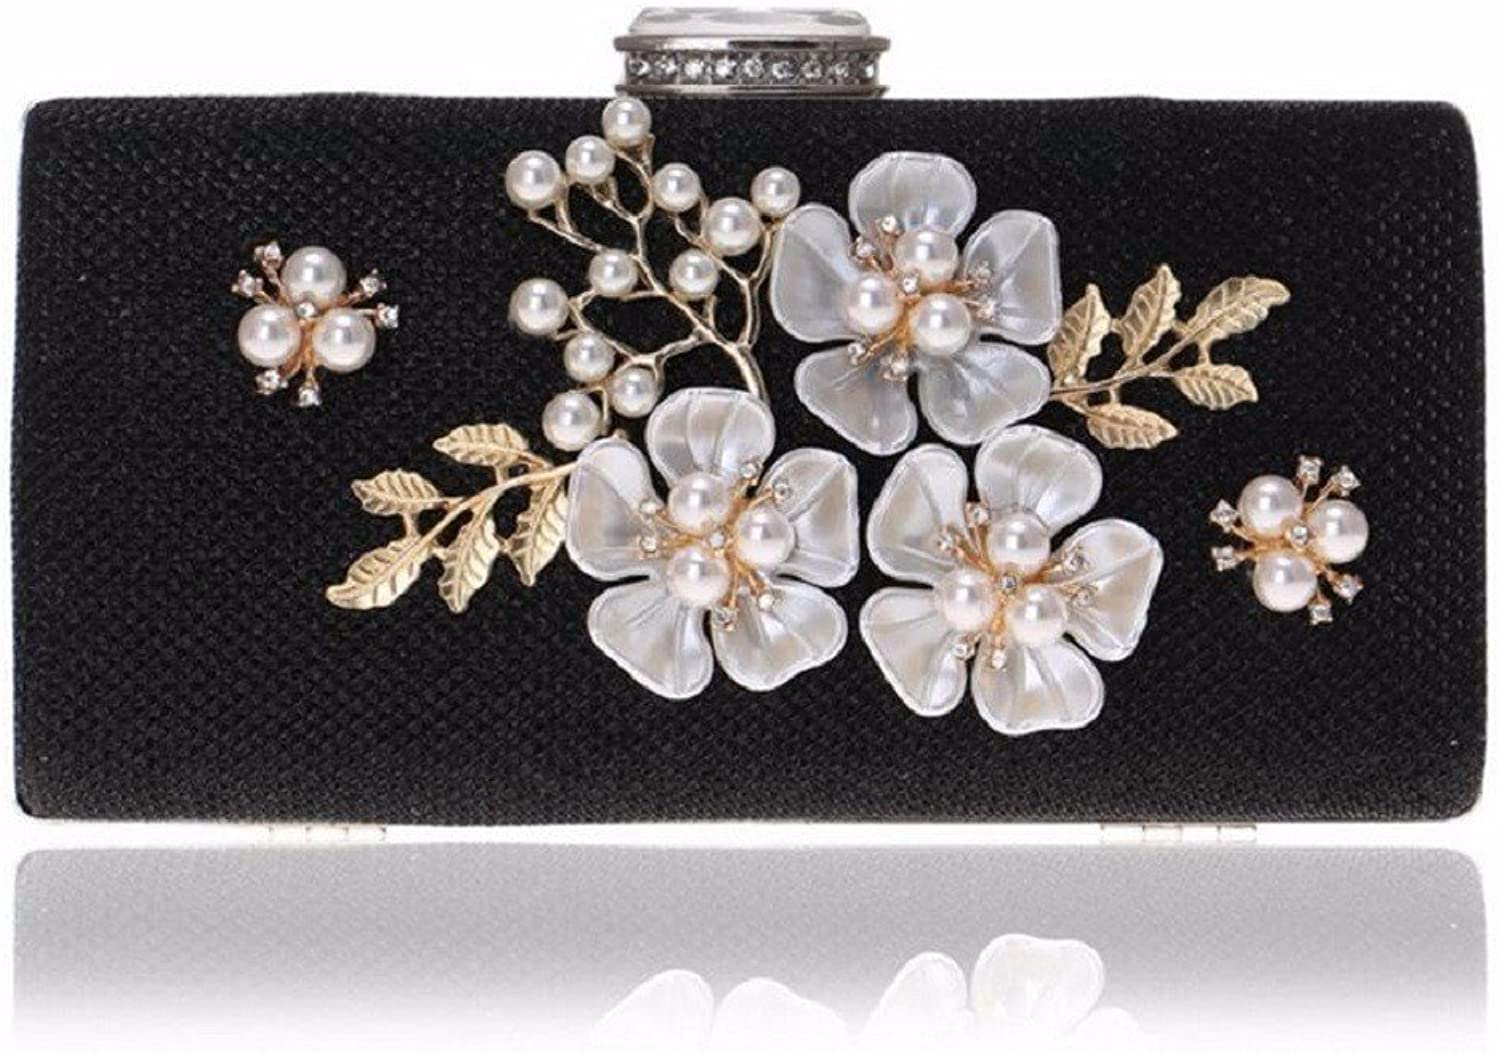 XJTNLB European and American Dinner Bag Pearl Evening Bag Ladies Dress Evening Clutch,Black